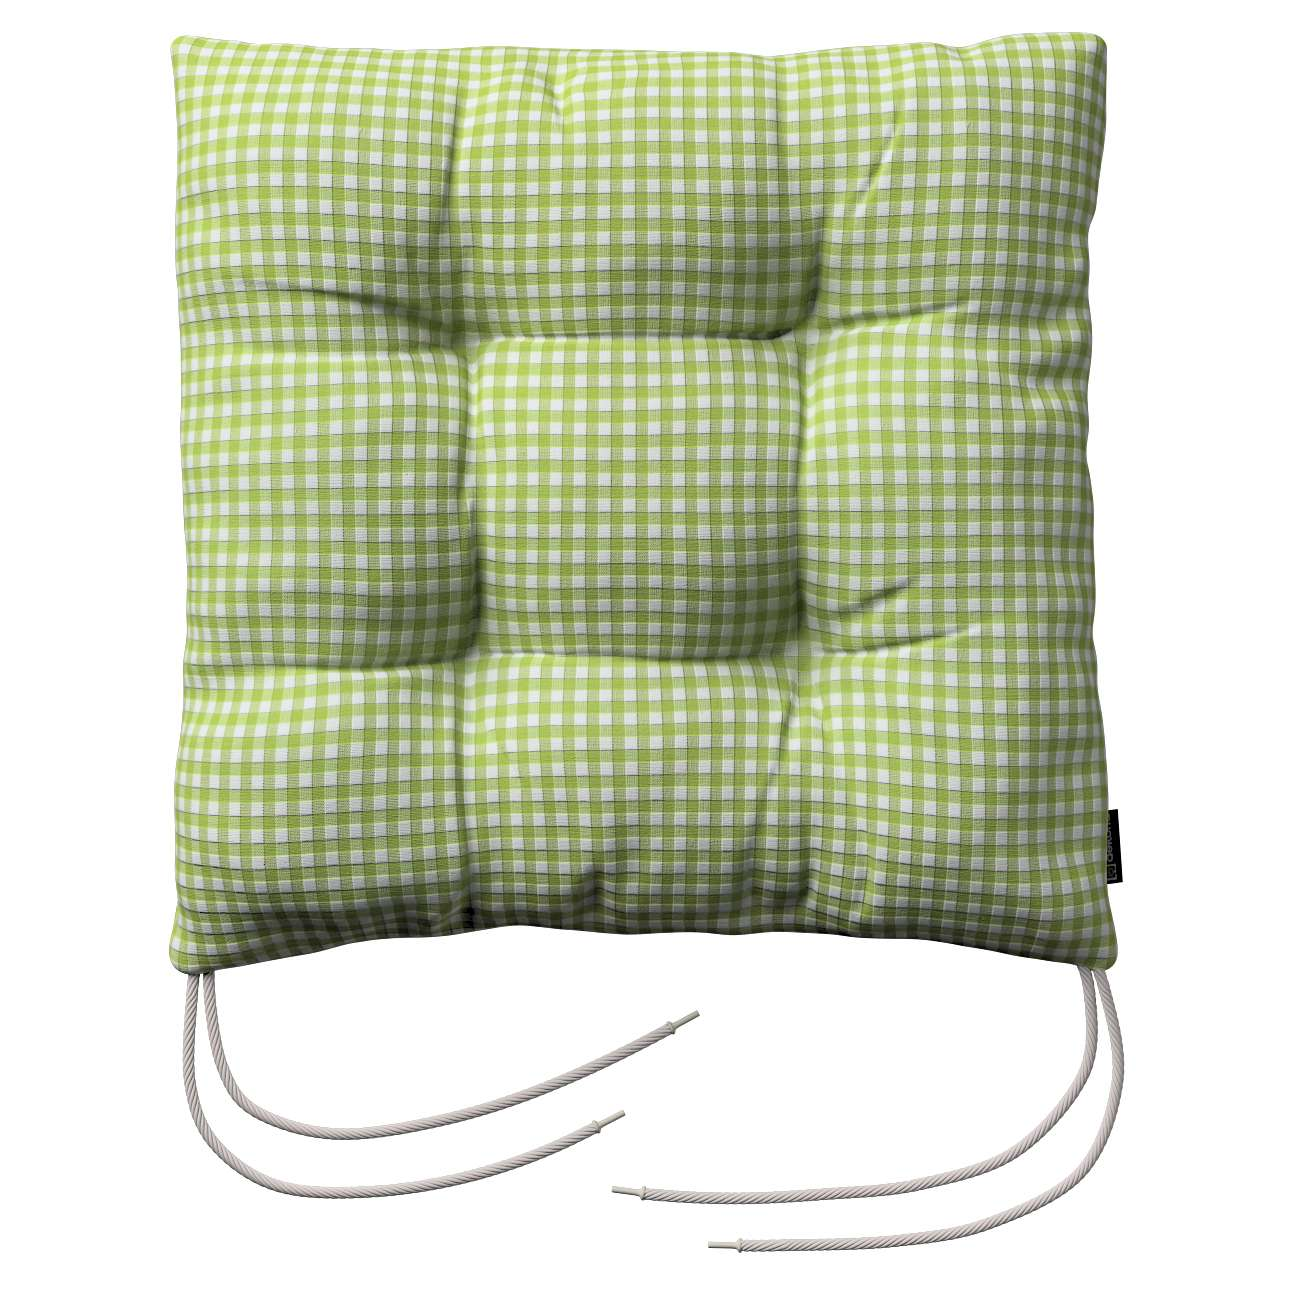 Jack seat pad with ties in collection Quadro, fabric: 136-33